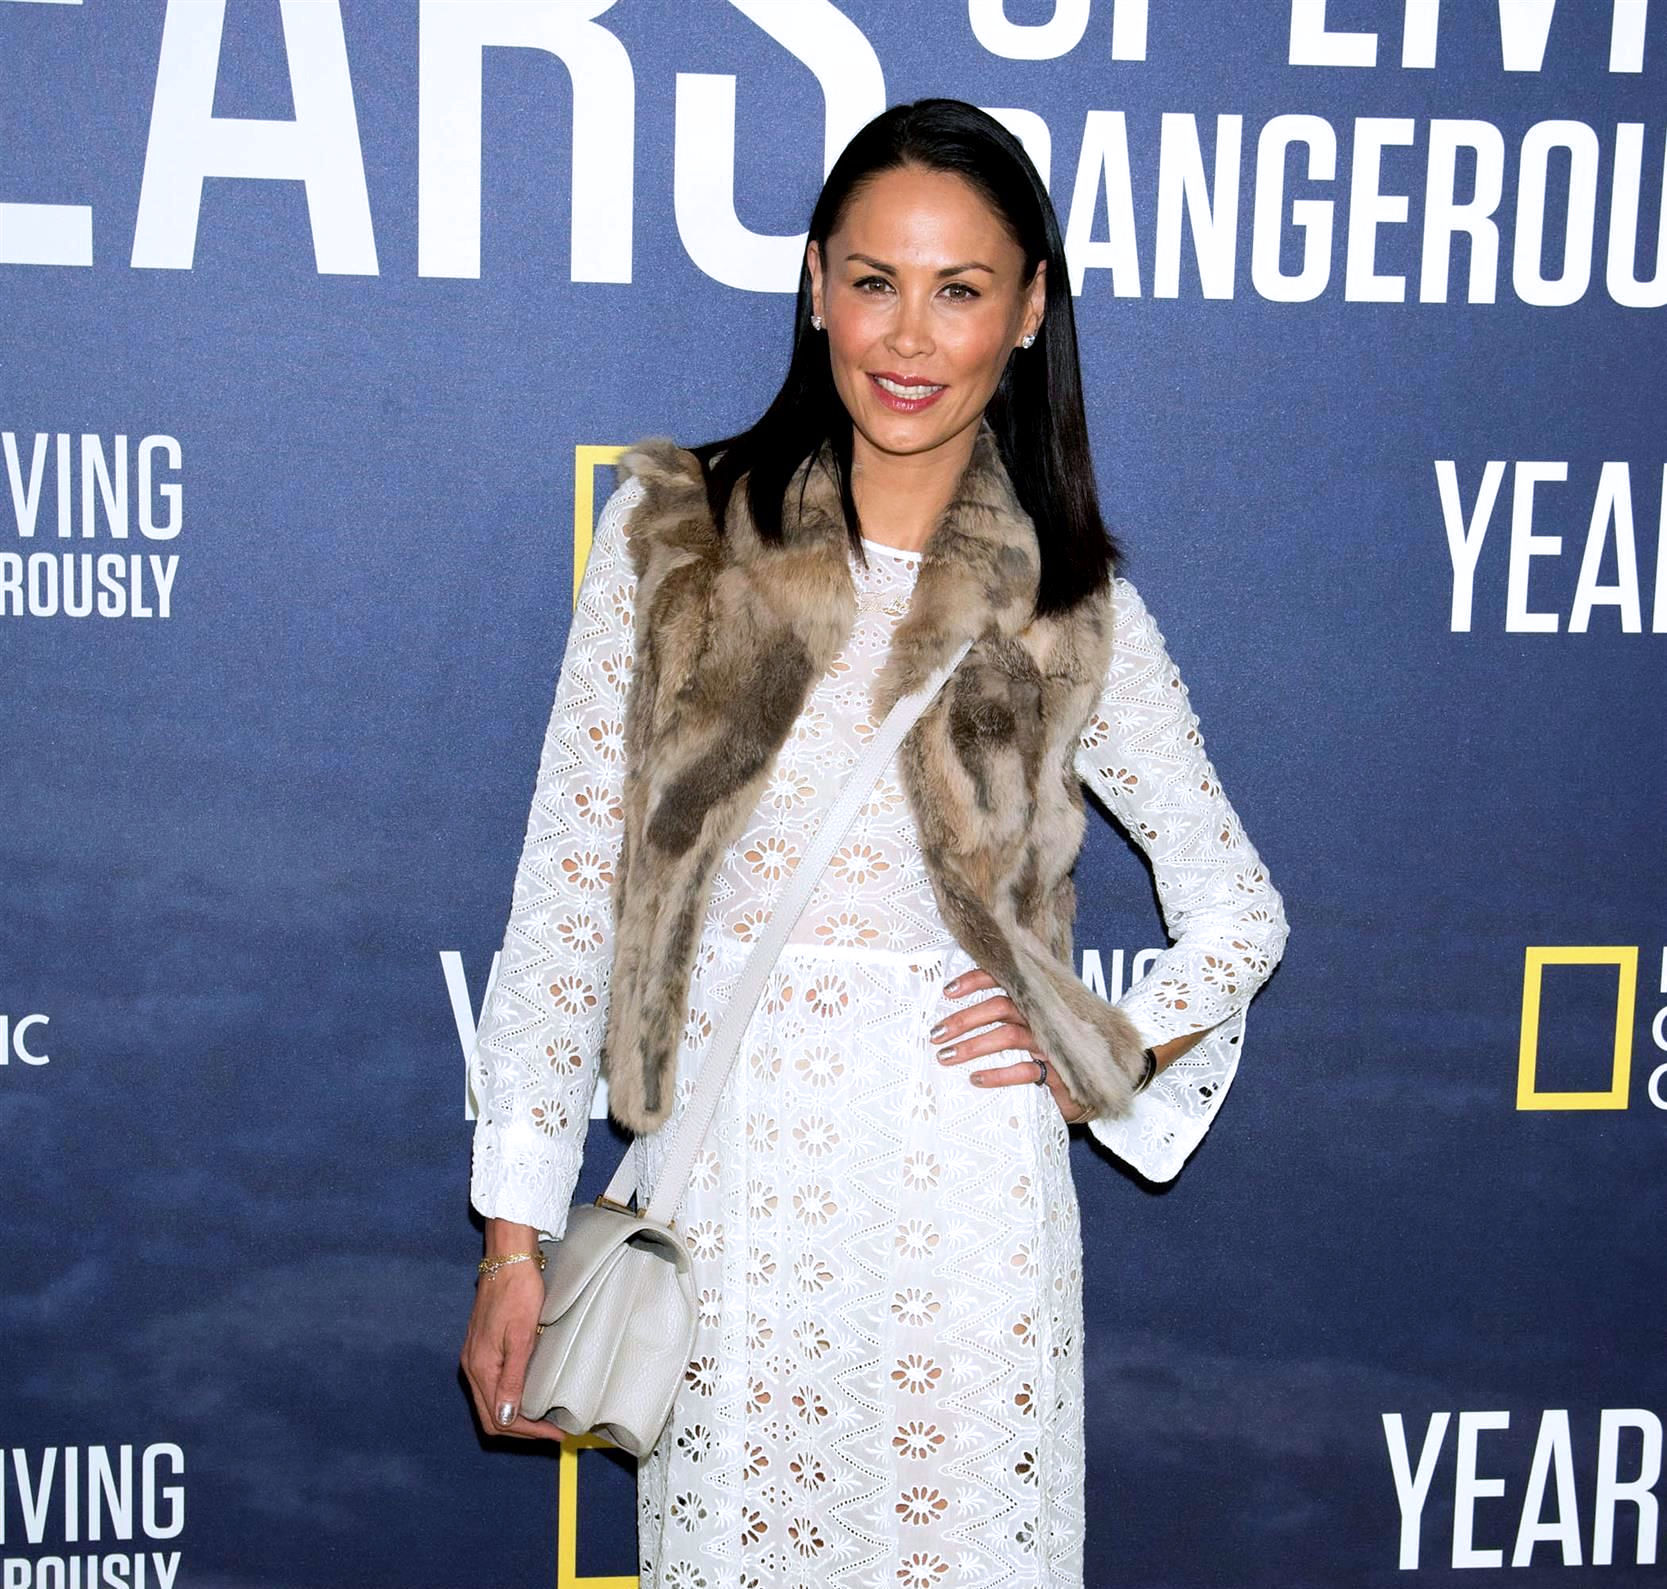 Ex RHONY Star Jules Wainstein Arrested for Battery After Bizarre Attack on Her Estranged Husband Michael in Florida